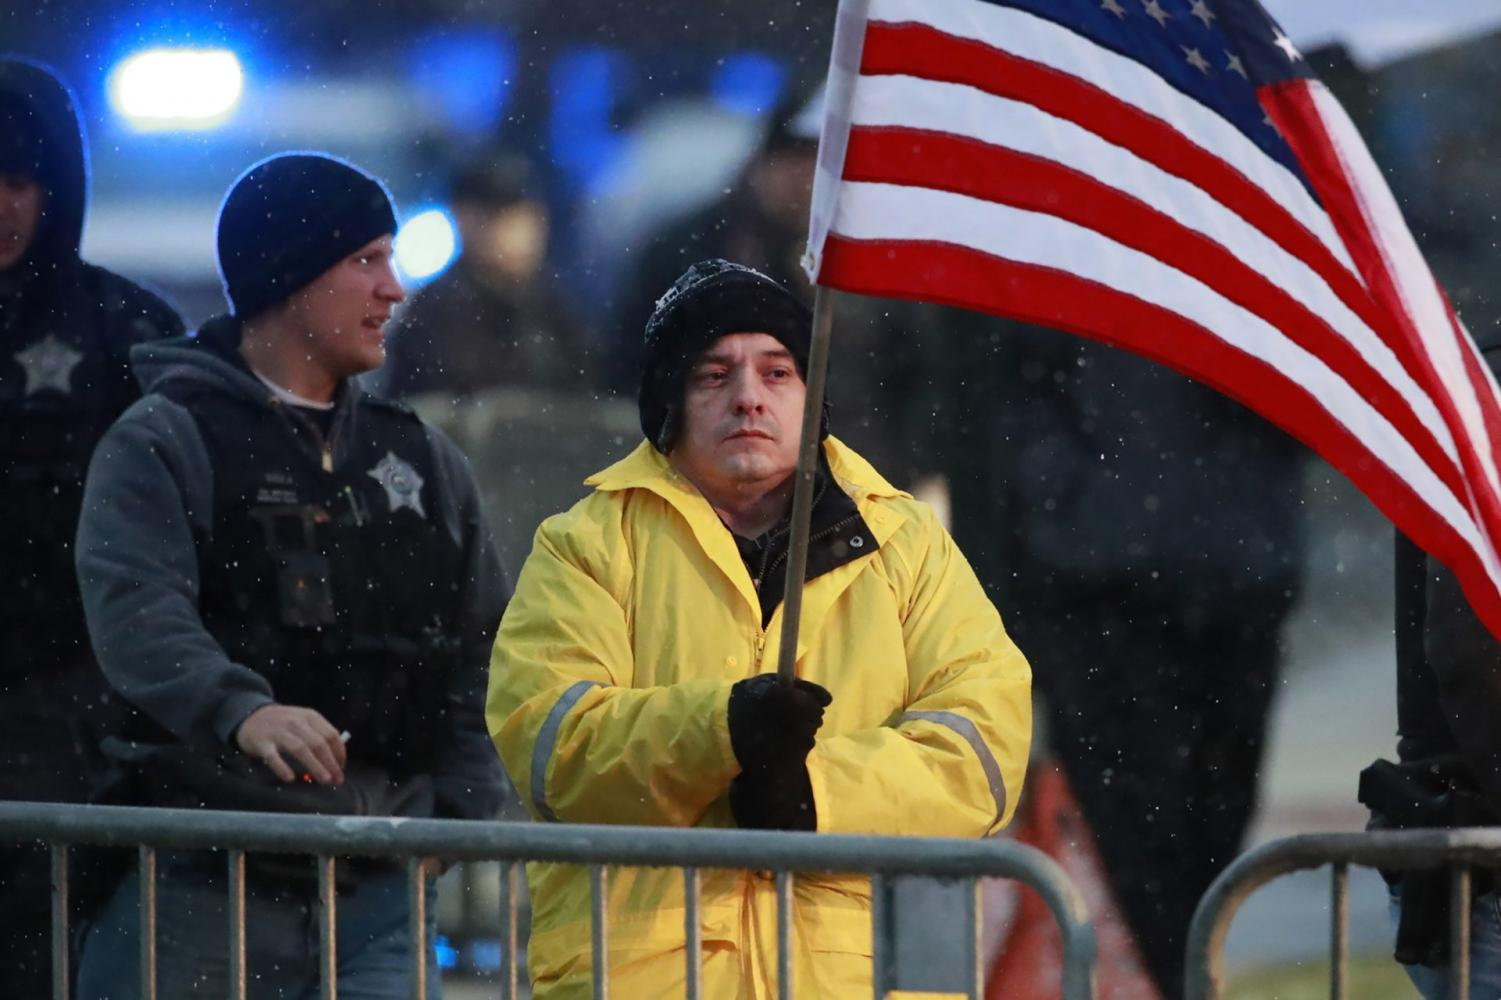 In this Nov. 25, 2018 file photo, State Rep. Jaime Andrade holds a flag outside the visitation for Chicago police Officer Samuel Jimenez at a funeral home in Des Plaines, Ill.A federal bribery charge against an Illinois legislator has led to questions about whether lawmakers be allowed to lobby other units of government. Illinois like most states allows legislators to lobby outside state government. Andrade said he registered as a Chicago lobbyist and started charging for his services when the state budget crisis from 2015 to 2017 forced lawmakers to go without paychecks.